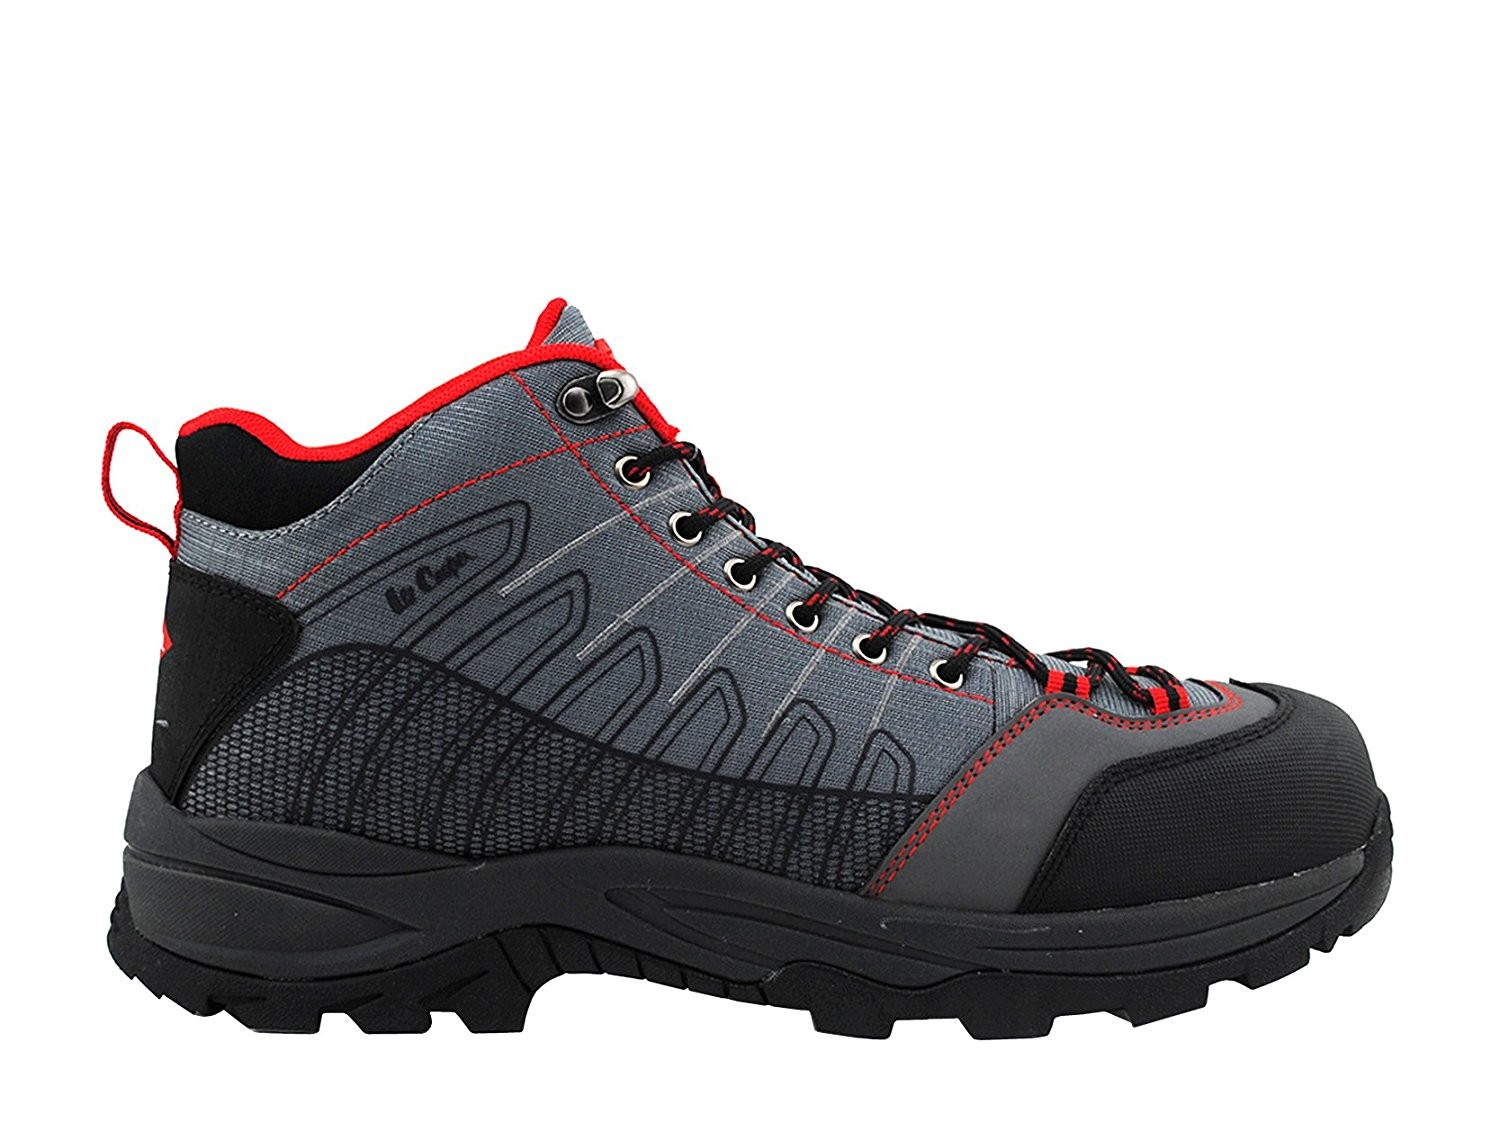 LEE COOPER WORK BOOT WITH FULL WATERPROOF MEMBRANE